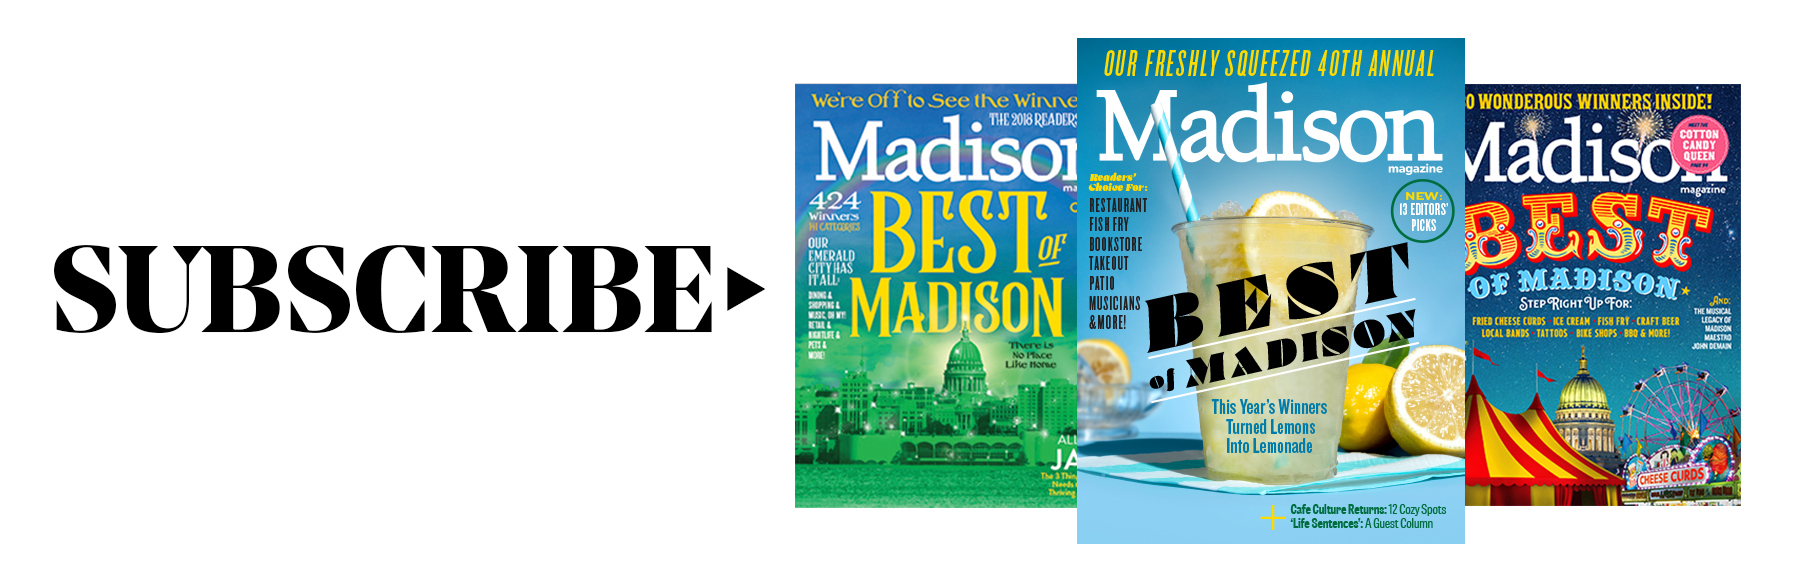 three best of madison covers with line that says Subscribe